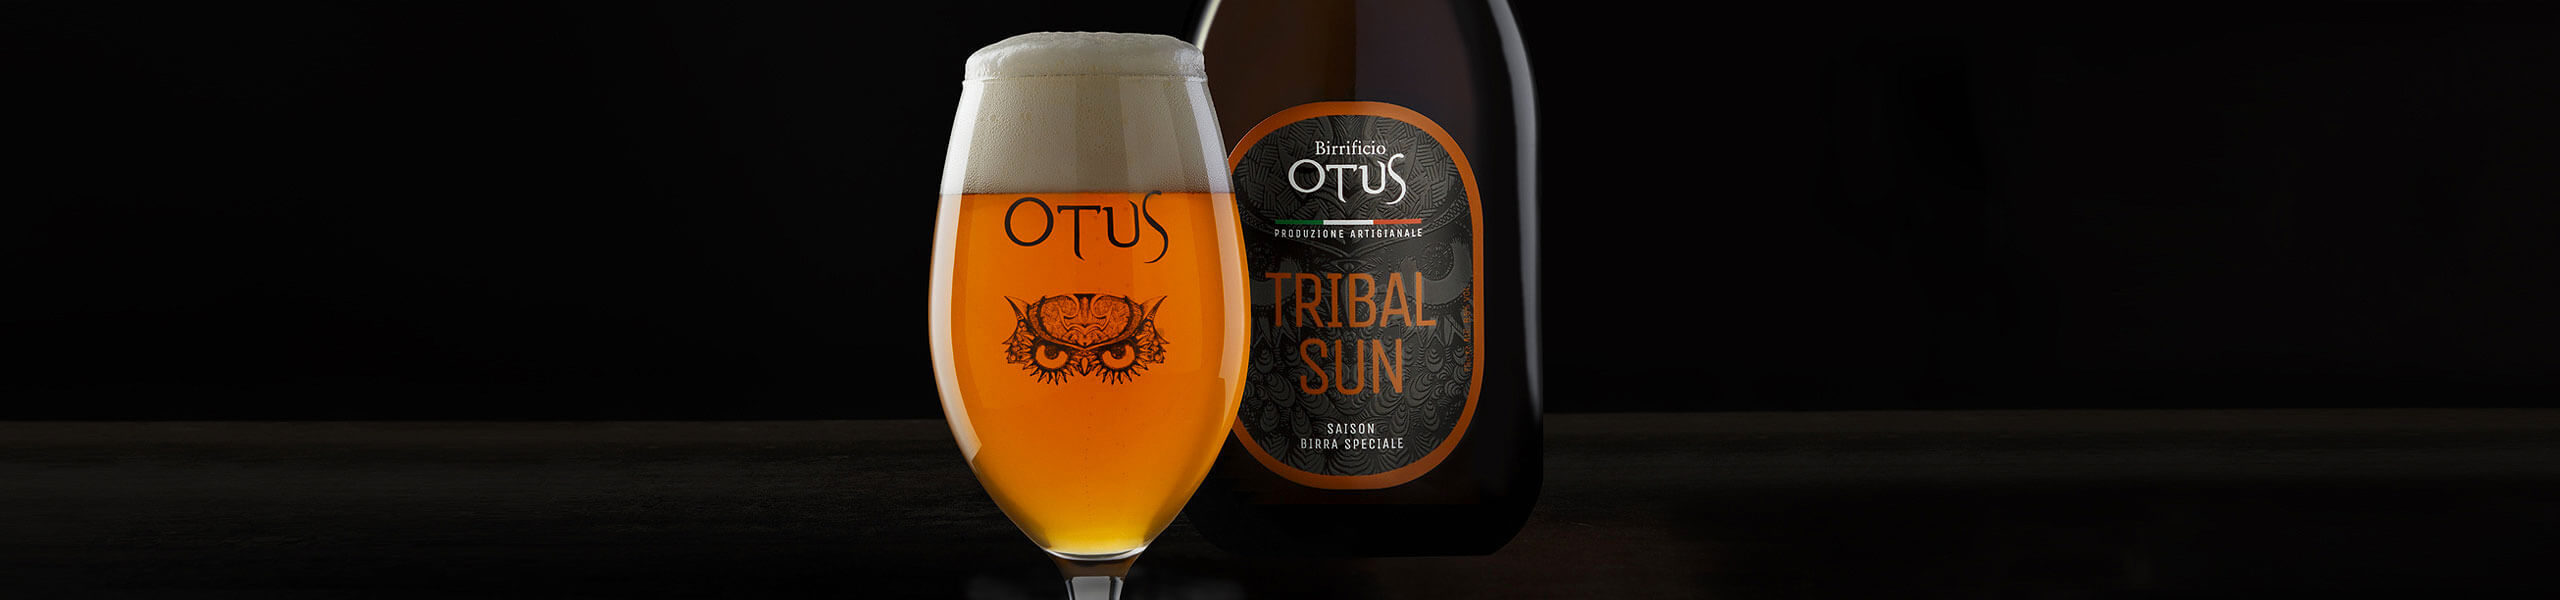 Slide Otus Tribal Sun